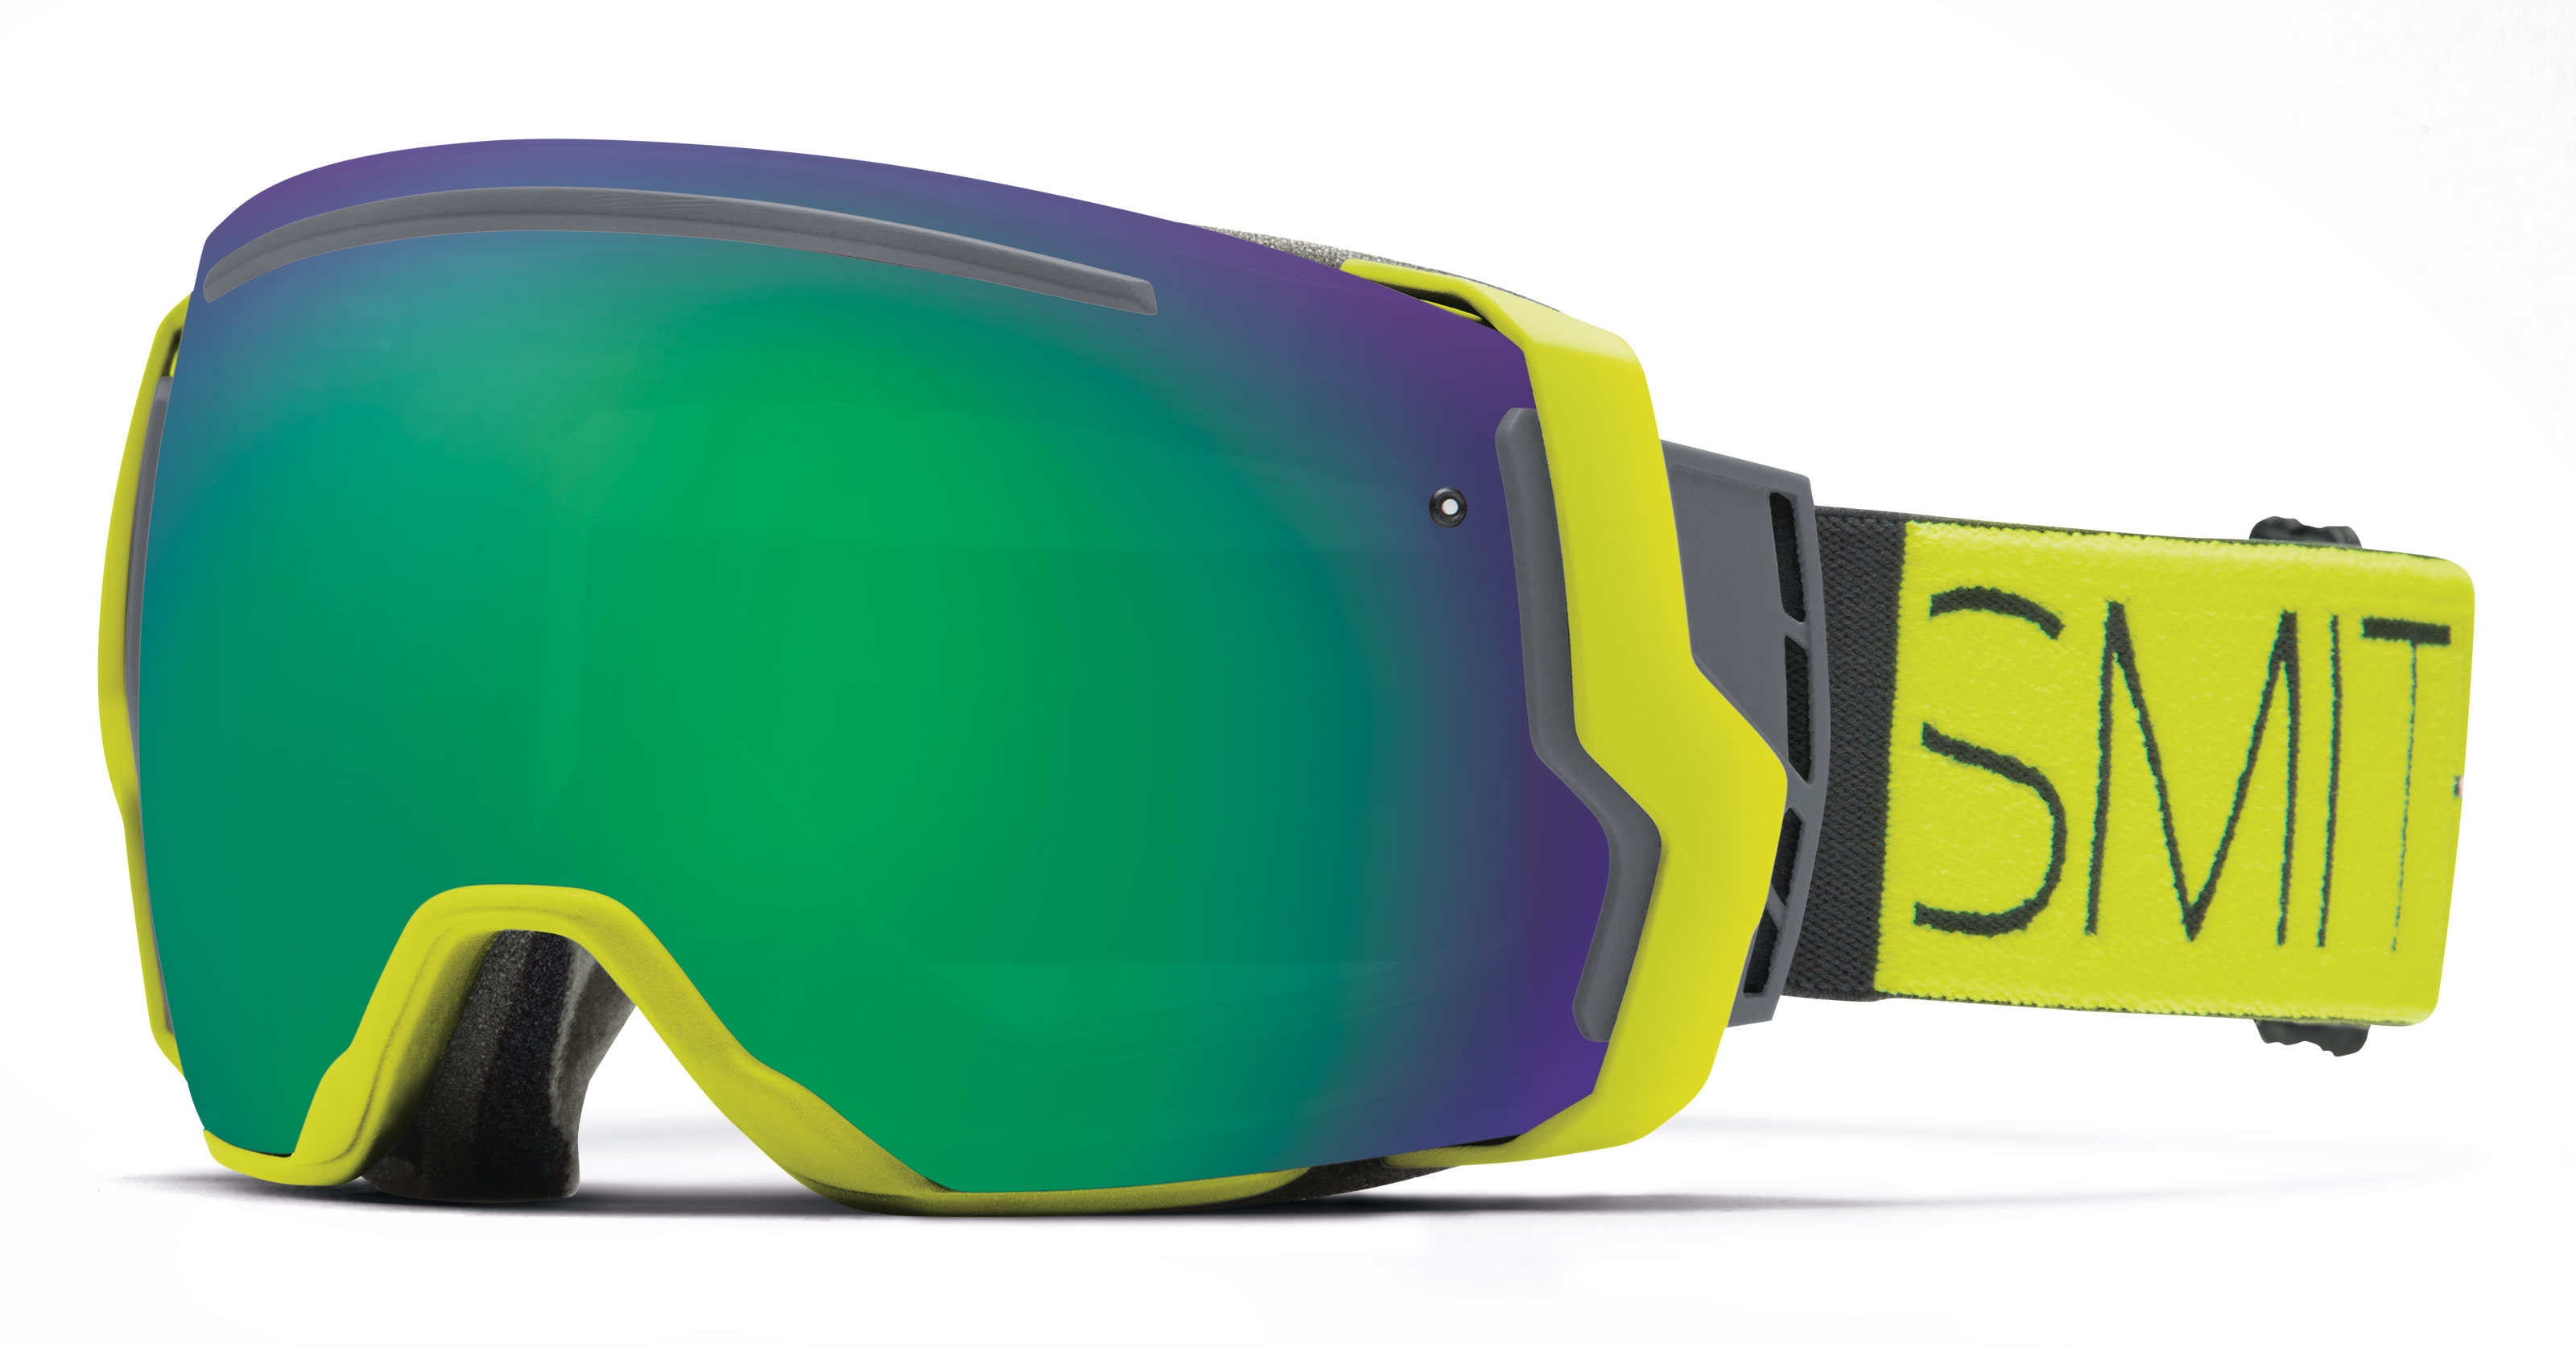 af6278a70014 Smith Optics I O7 Snow Goggles Review - ActiveLifeStore.com  The Blog